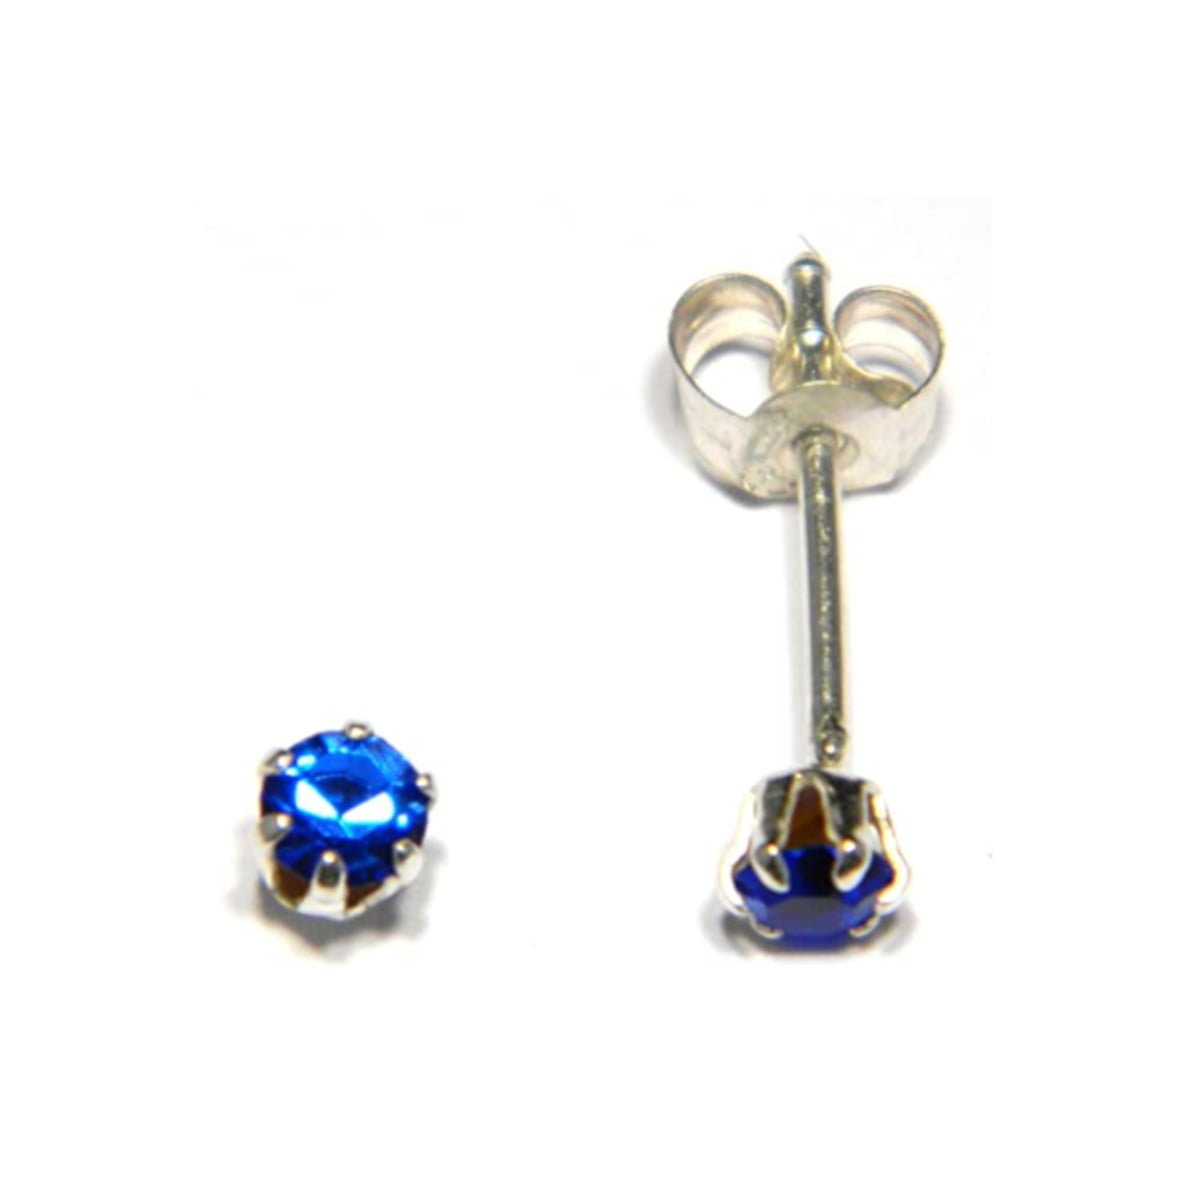 3 mm blue coloured crystal stud round solitaire earrings in sterling silver